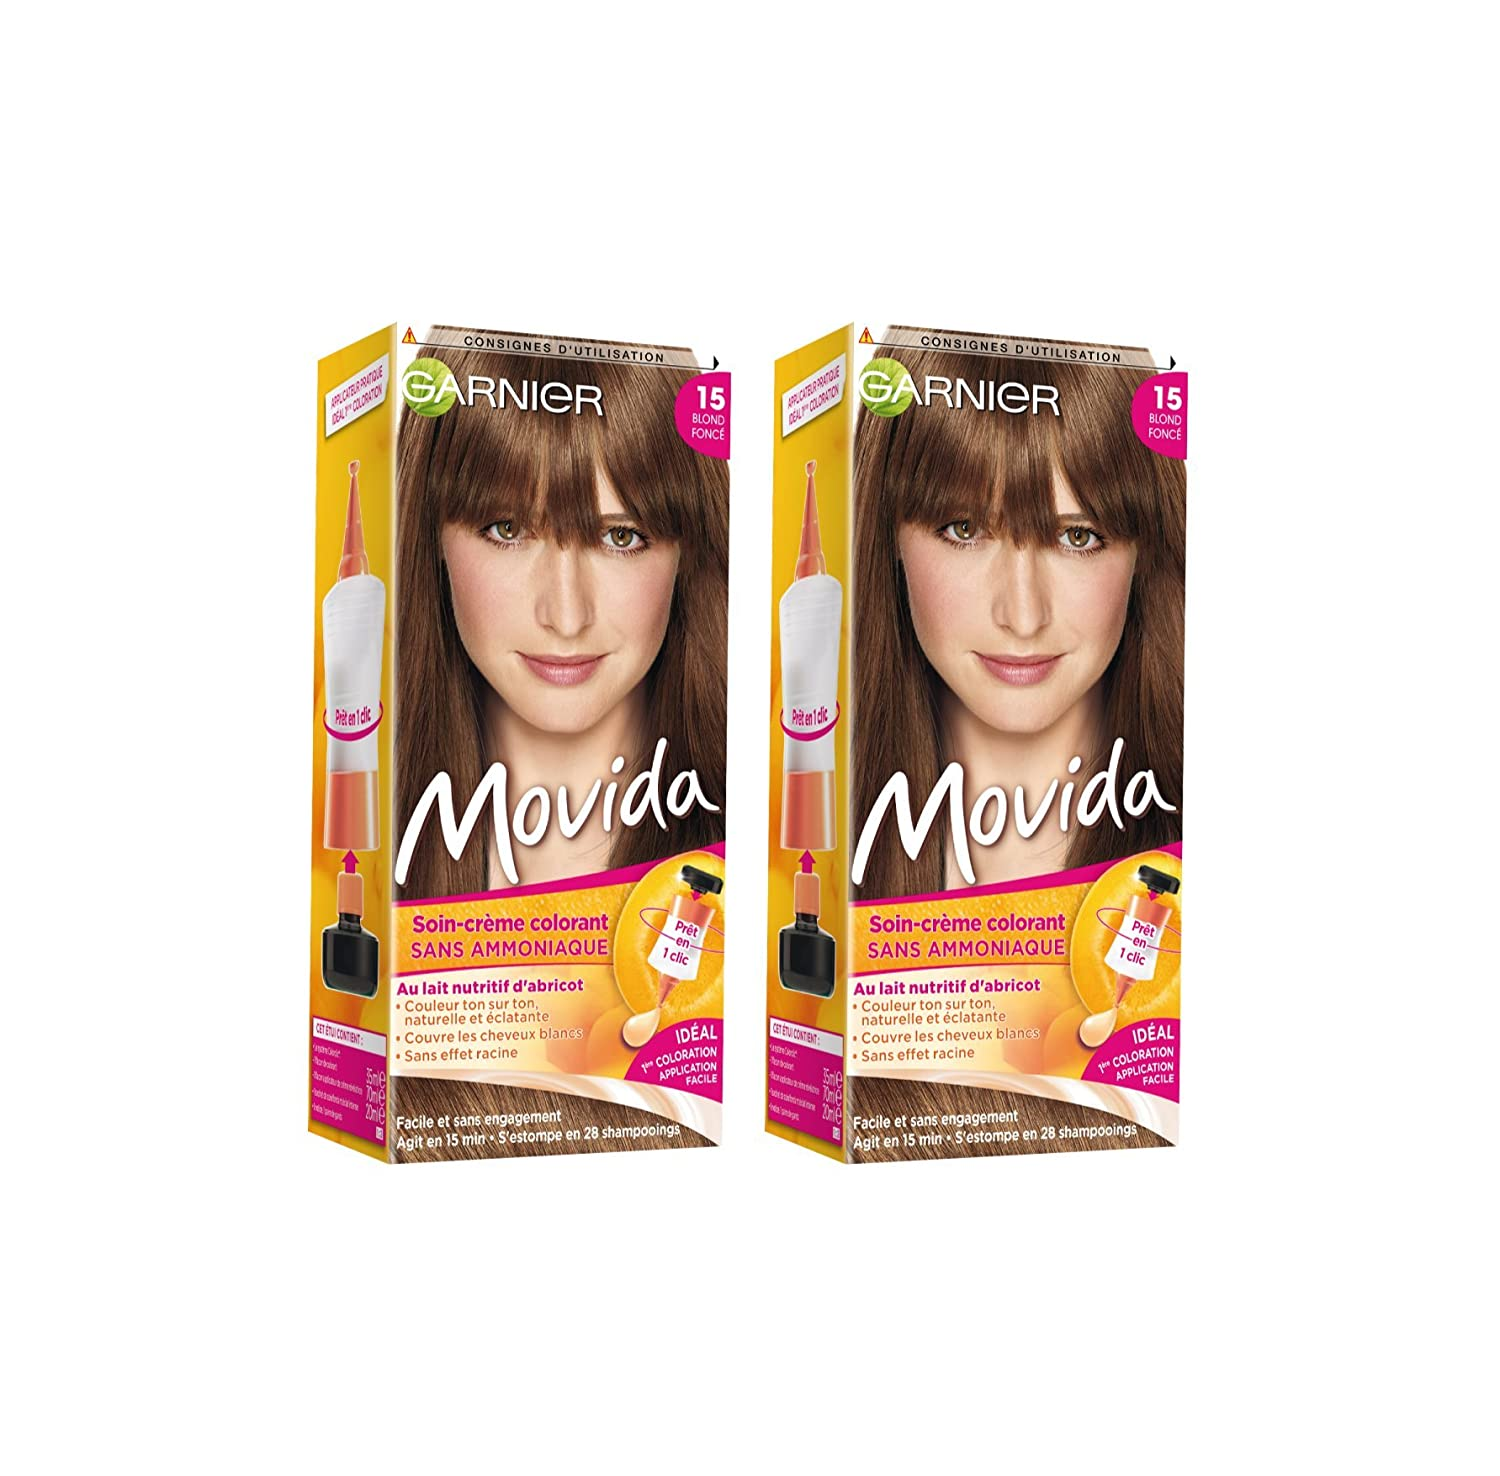 garnier movida coloration temporaire sans ammoniaque blond 15 blond fonc lot - Coloration Temporaire